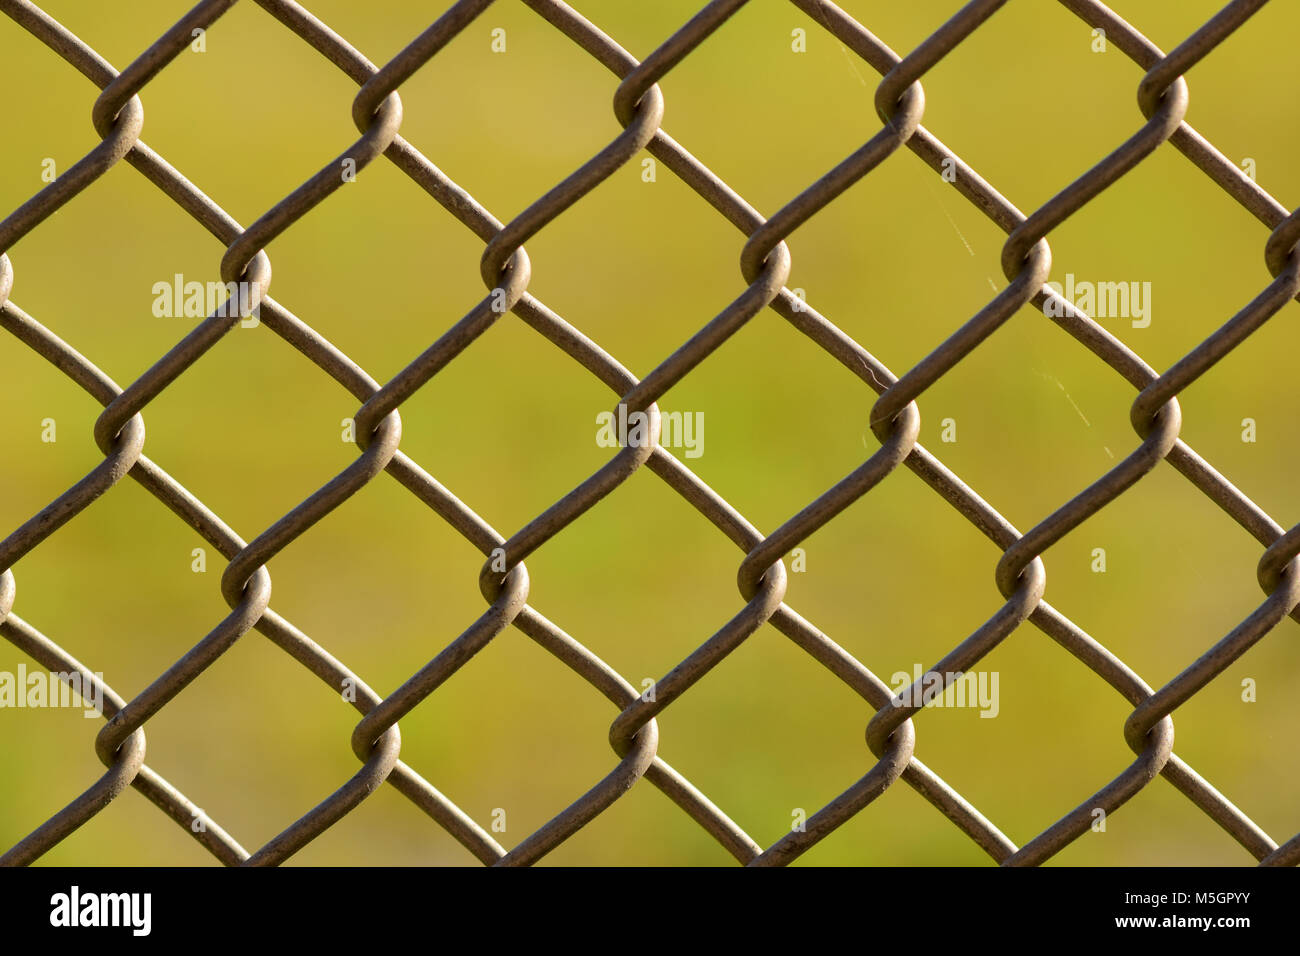 Metal Chain Link Fence Stock Photos & Metal Chain Link Fence Stock ...